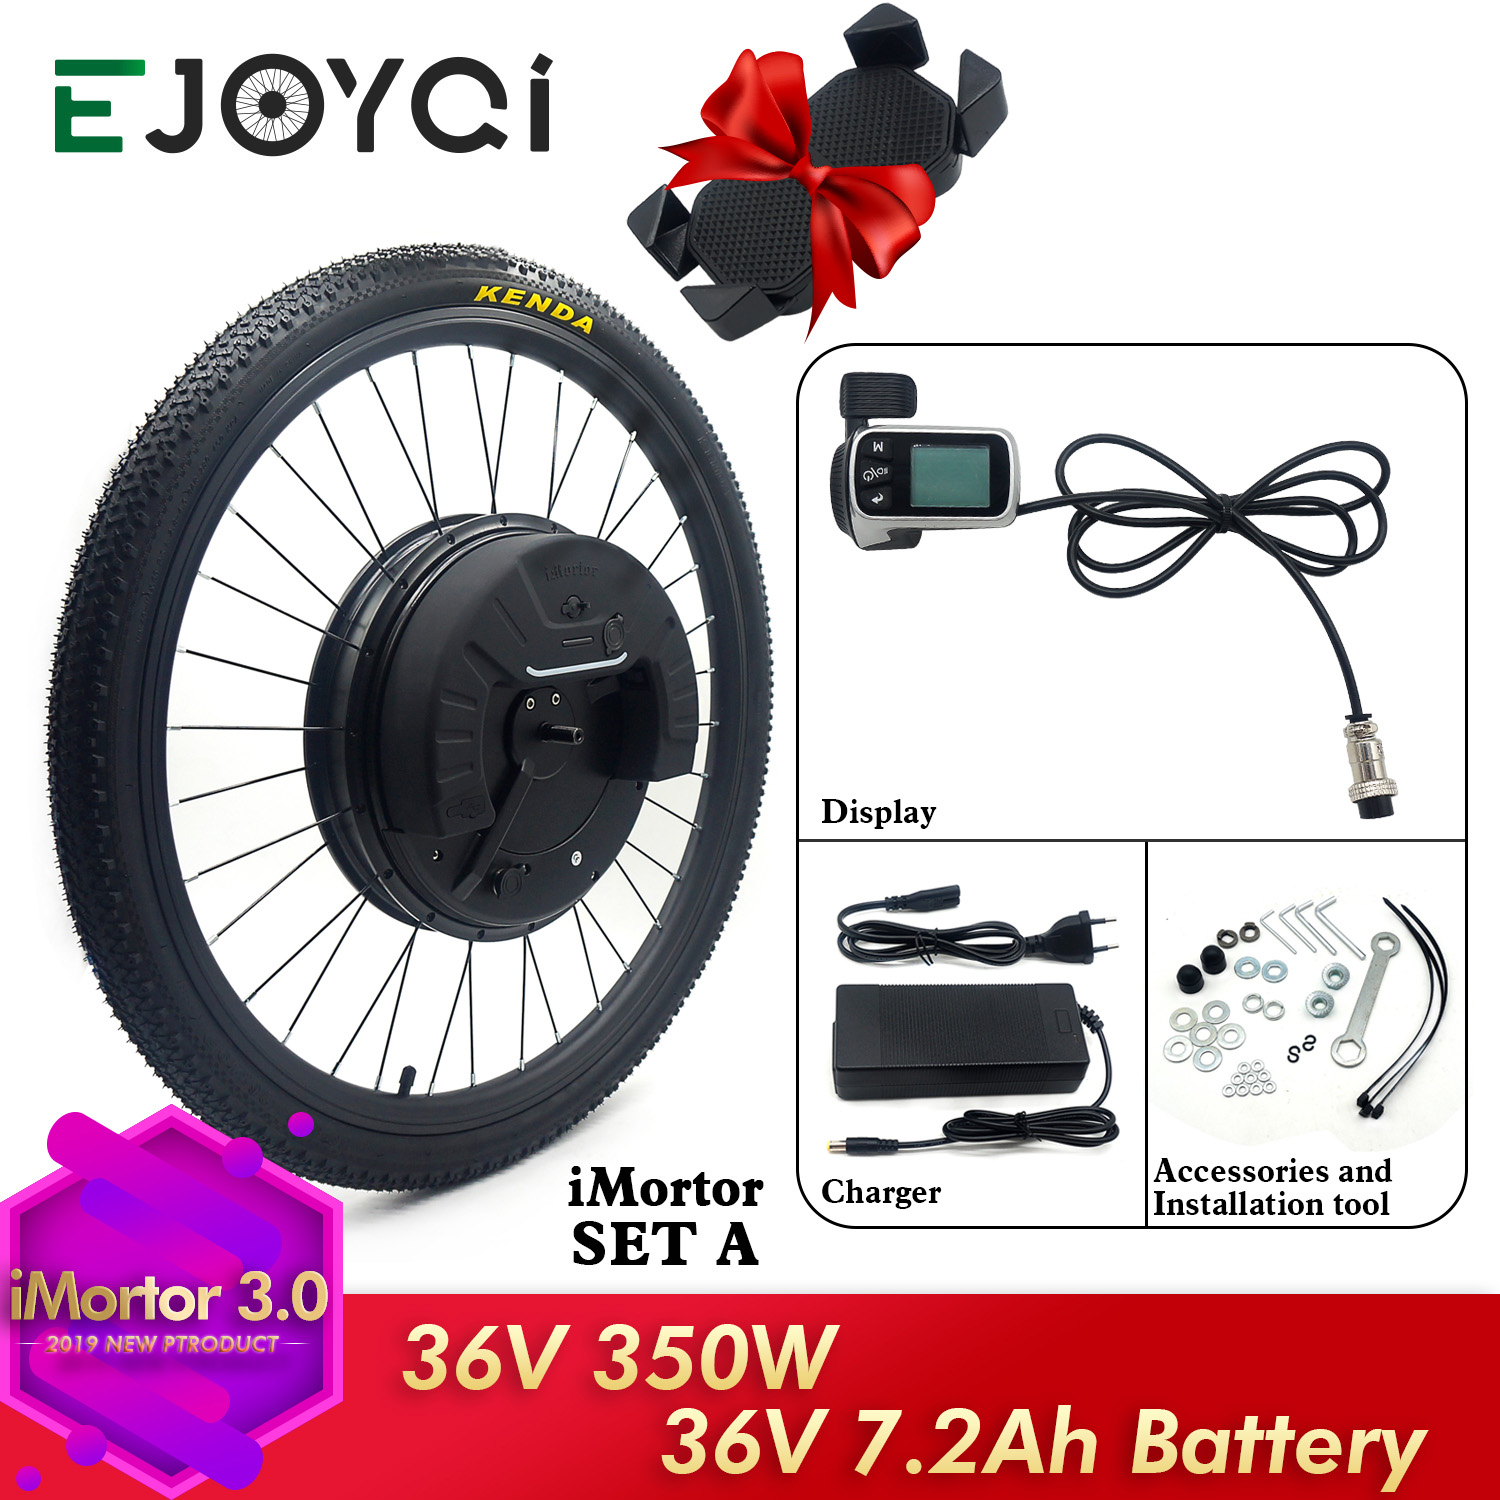 EJOYQI iMortor 3 36V 350W Electric <font><b>Bicycle</b></font> Motor <font><b>Wheel</b></font> 24